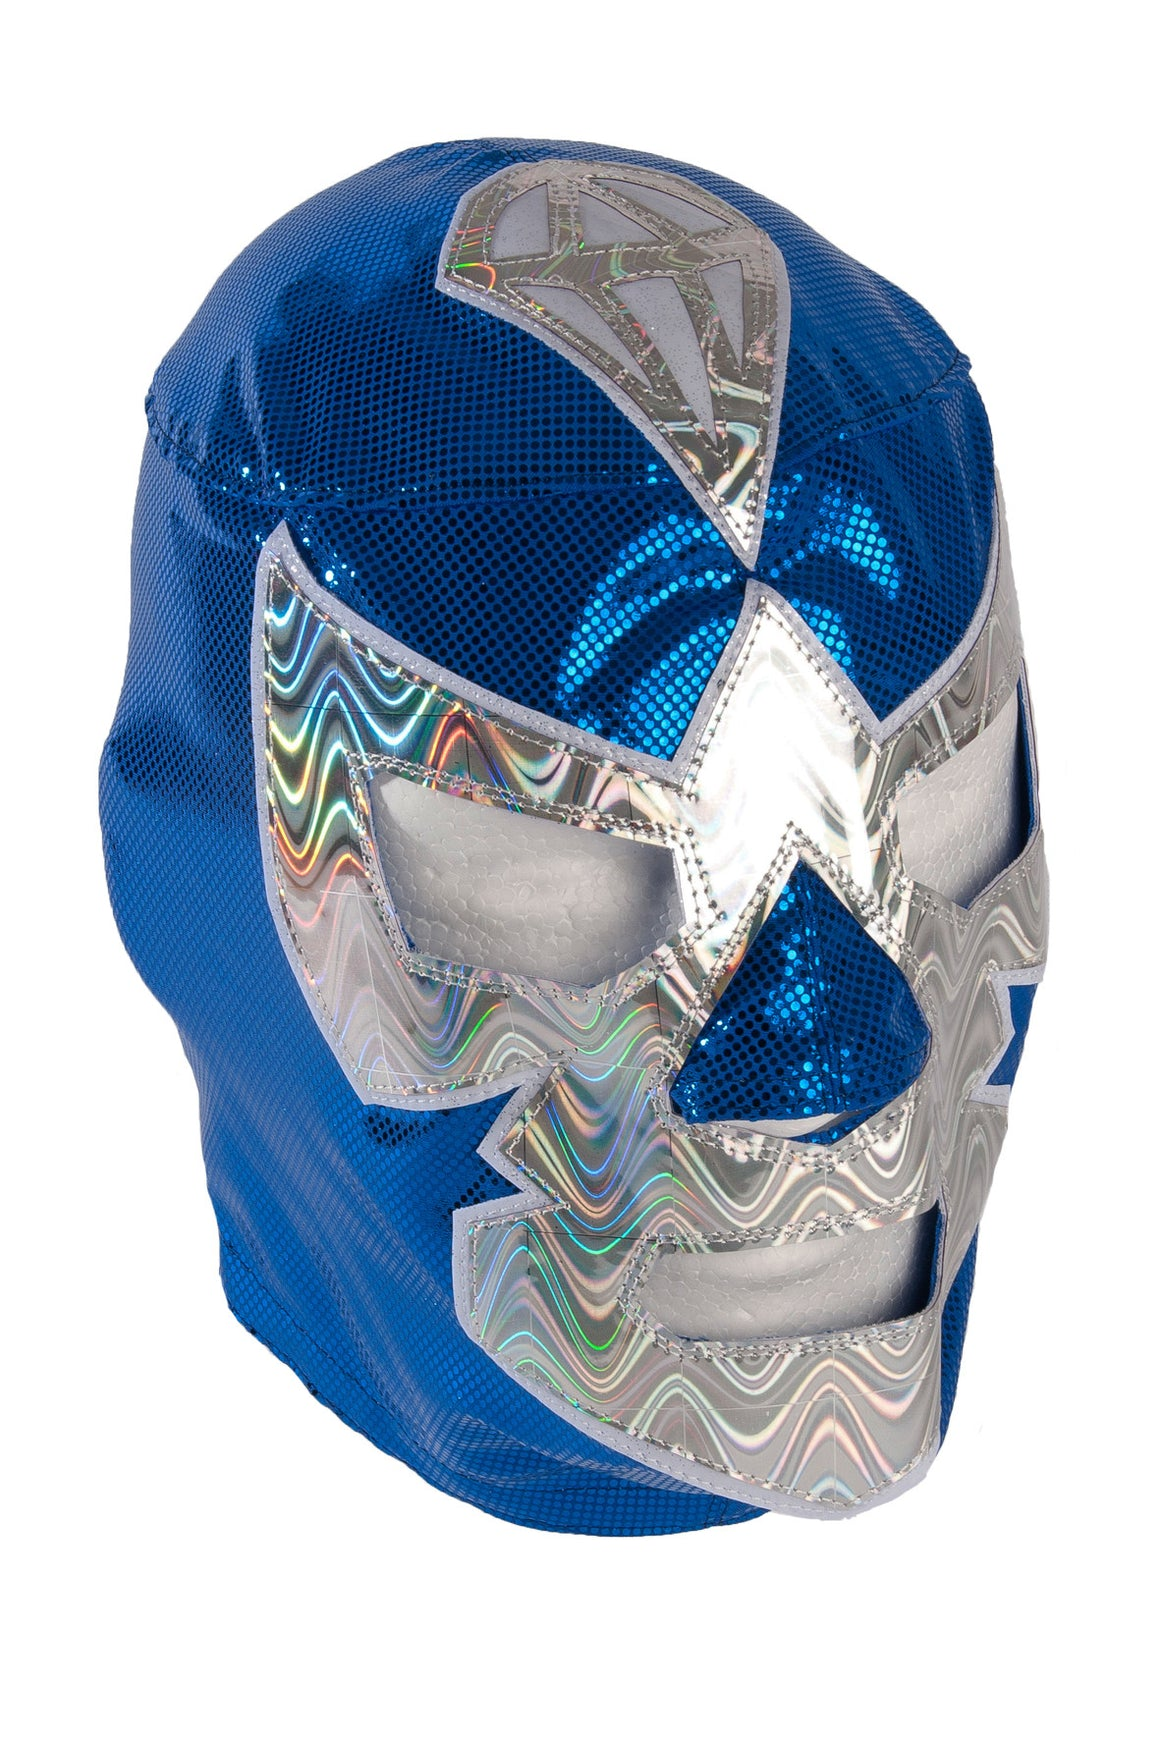 Diamante Azul Mask